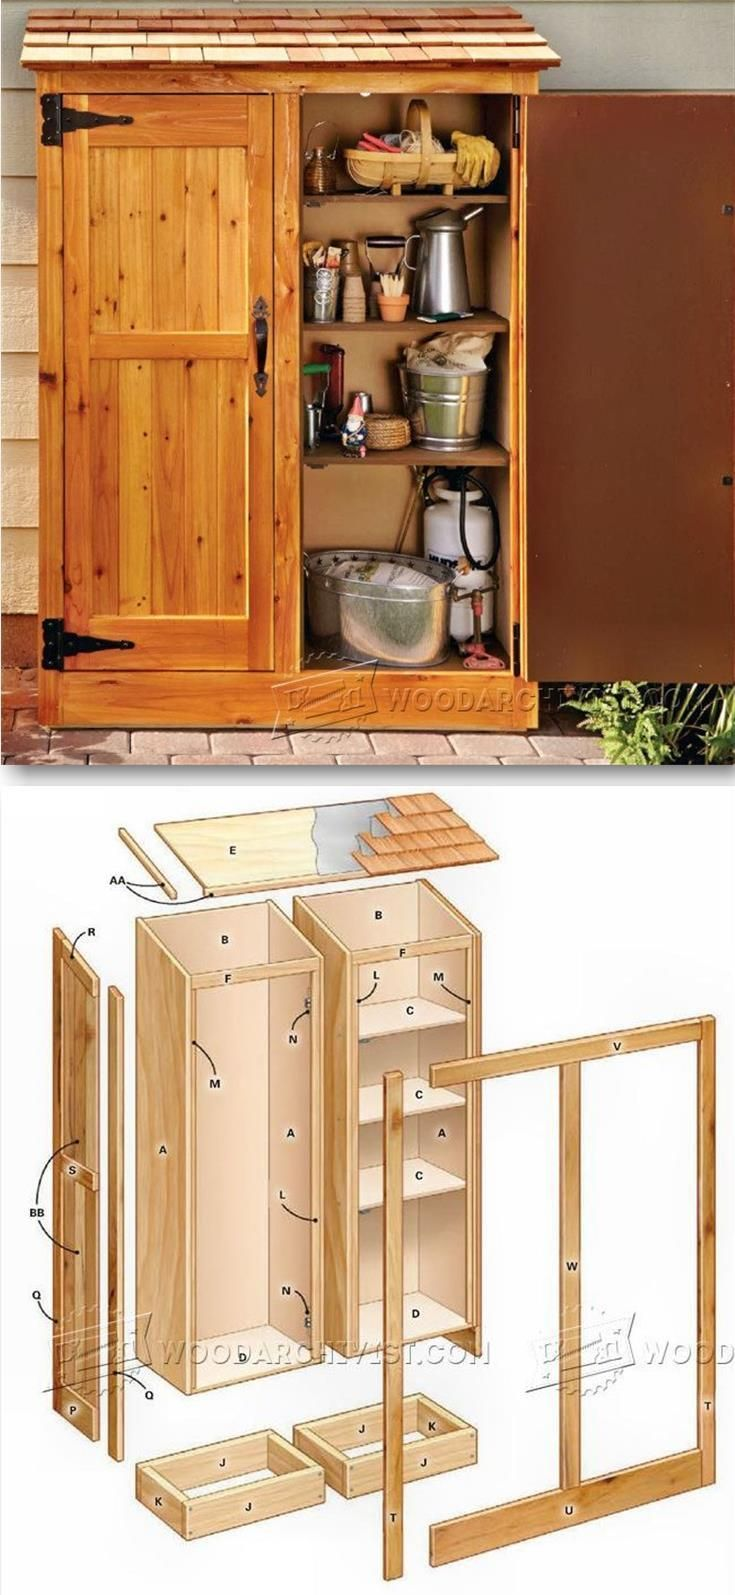 Small Shed Plans - Outdoor Plans and Projects | http://WoodArchivist.com